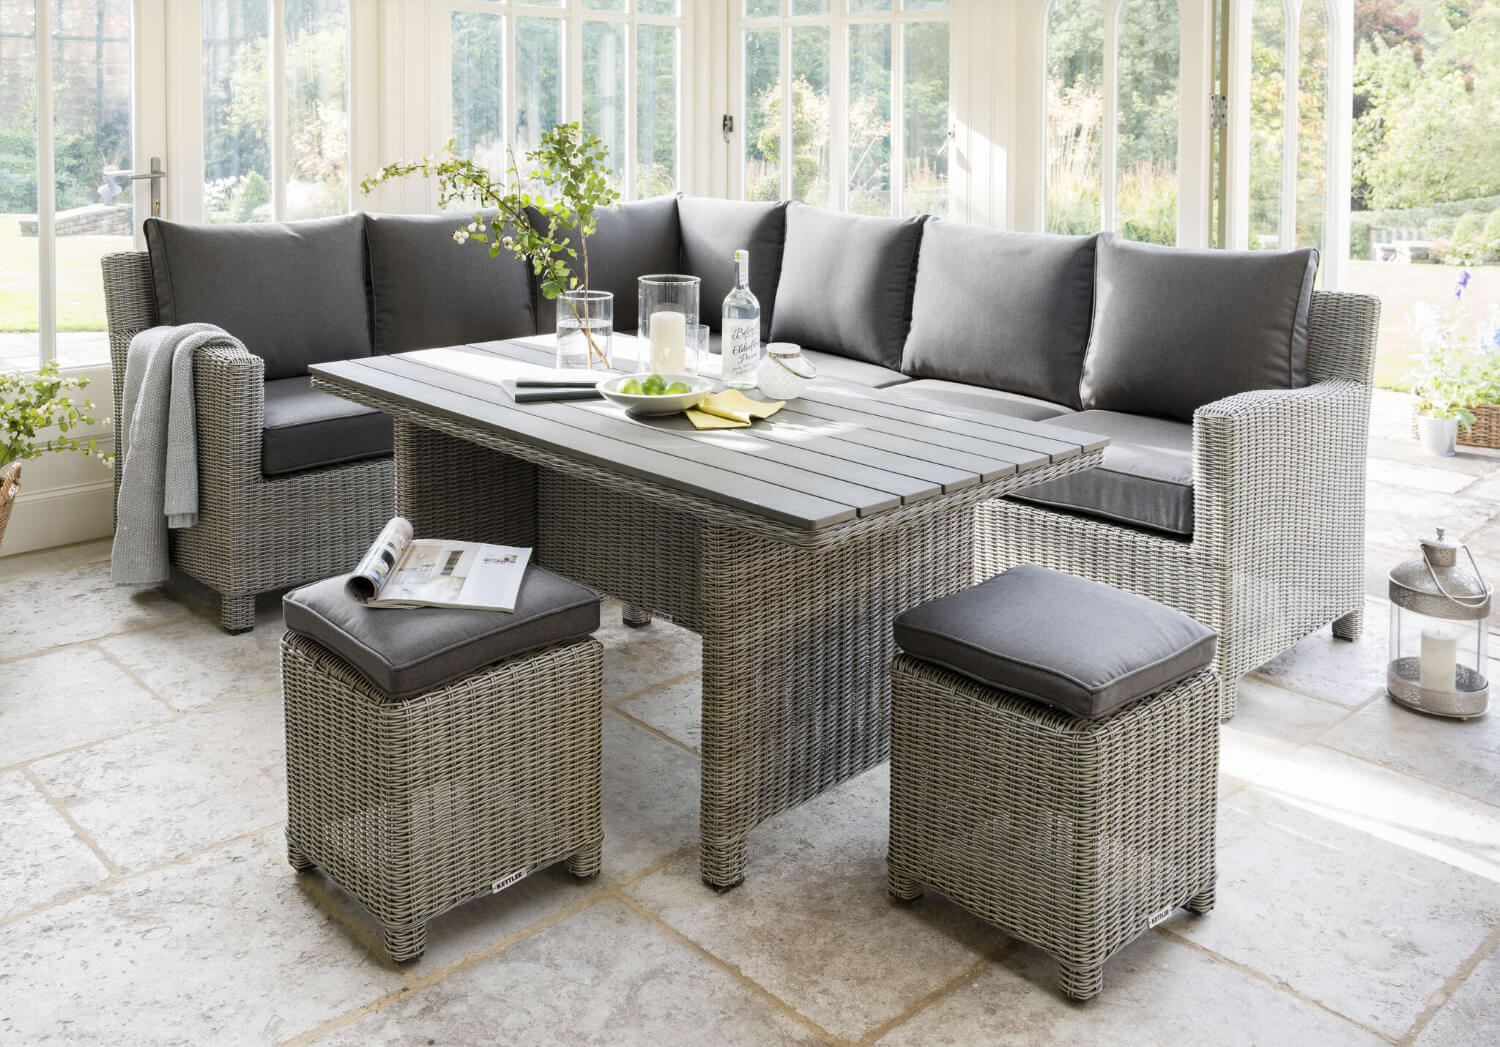 Kettler Palma Right Hand Corner Sofa Set In White Wash With Dining Table 1949 Garden4less Uk Shop